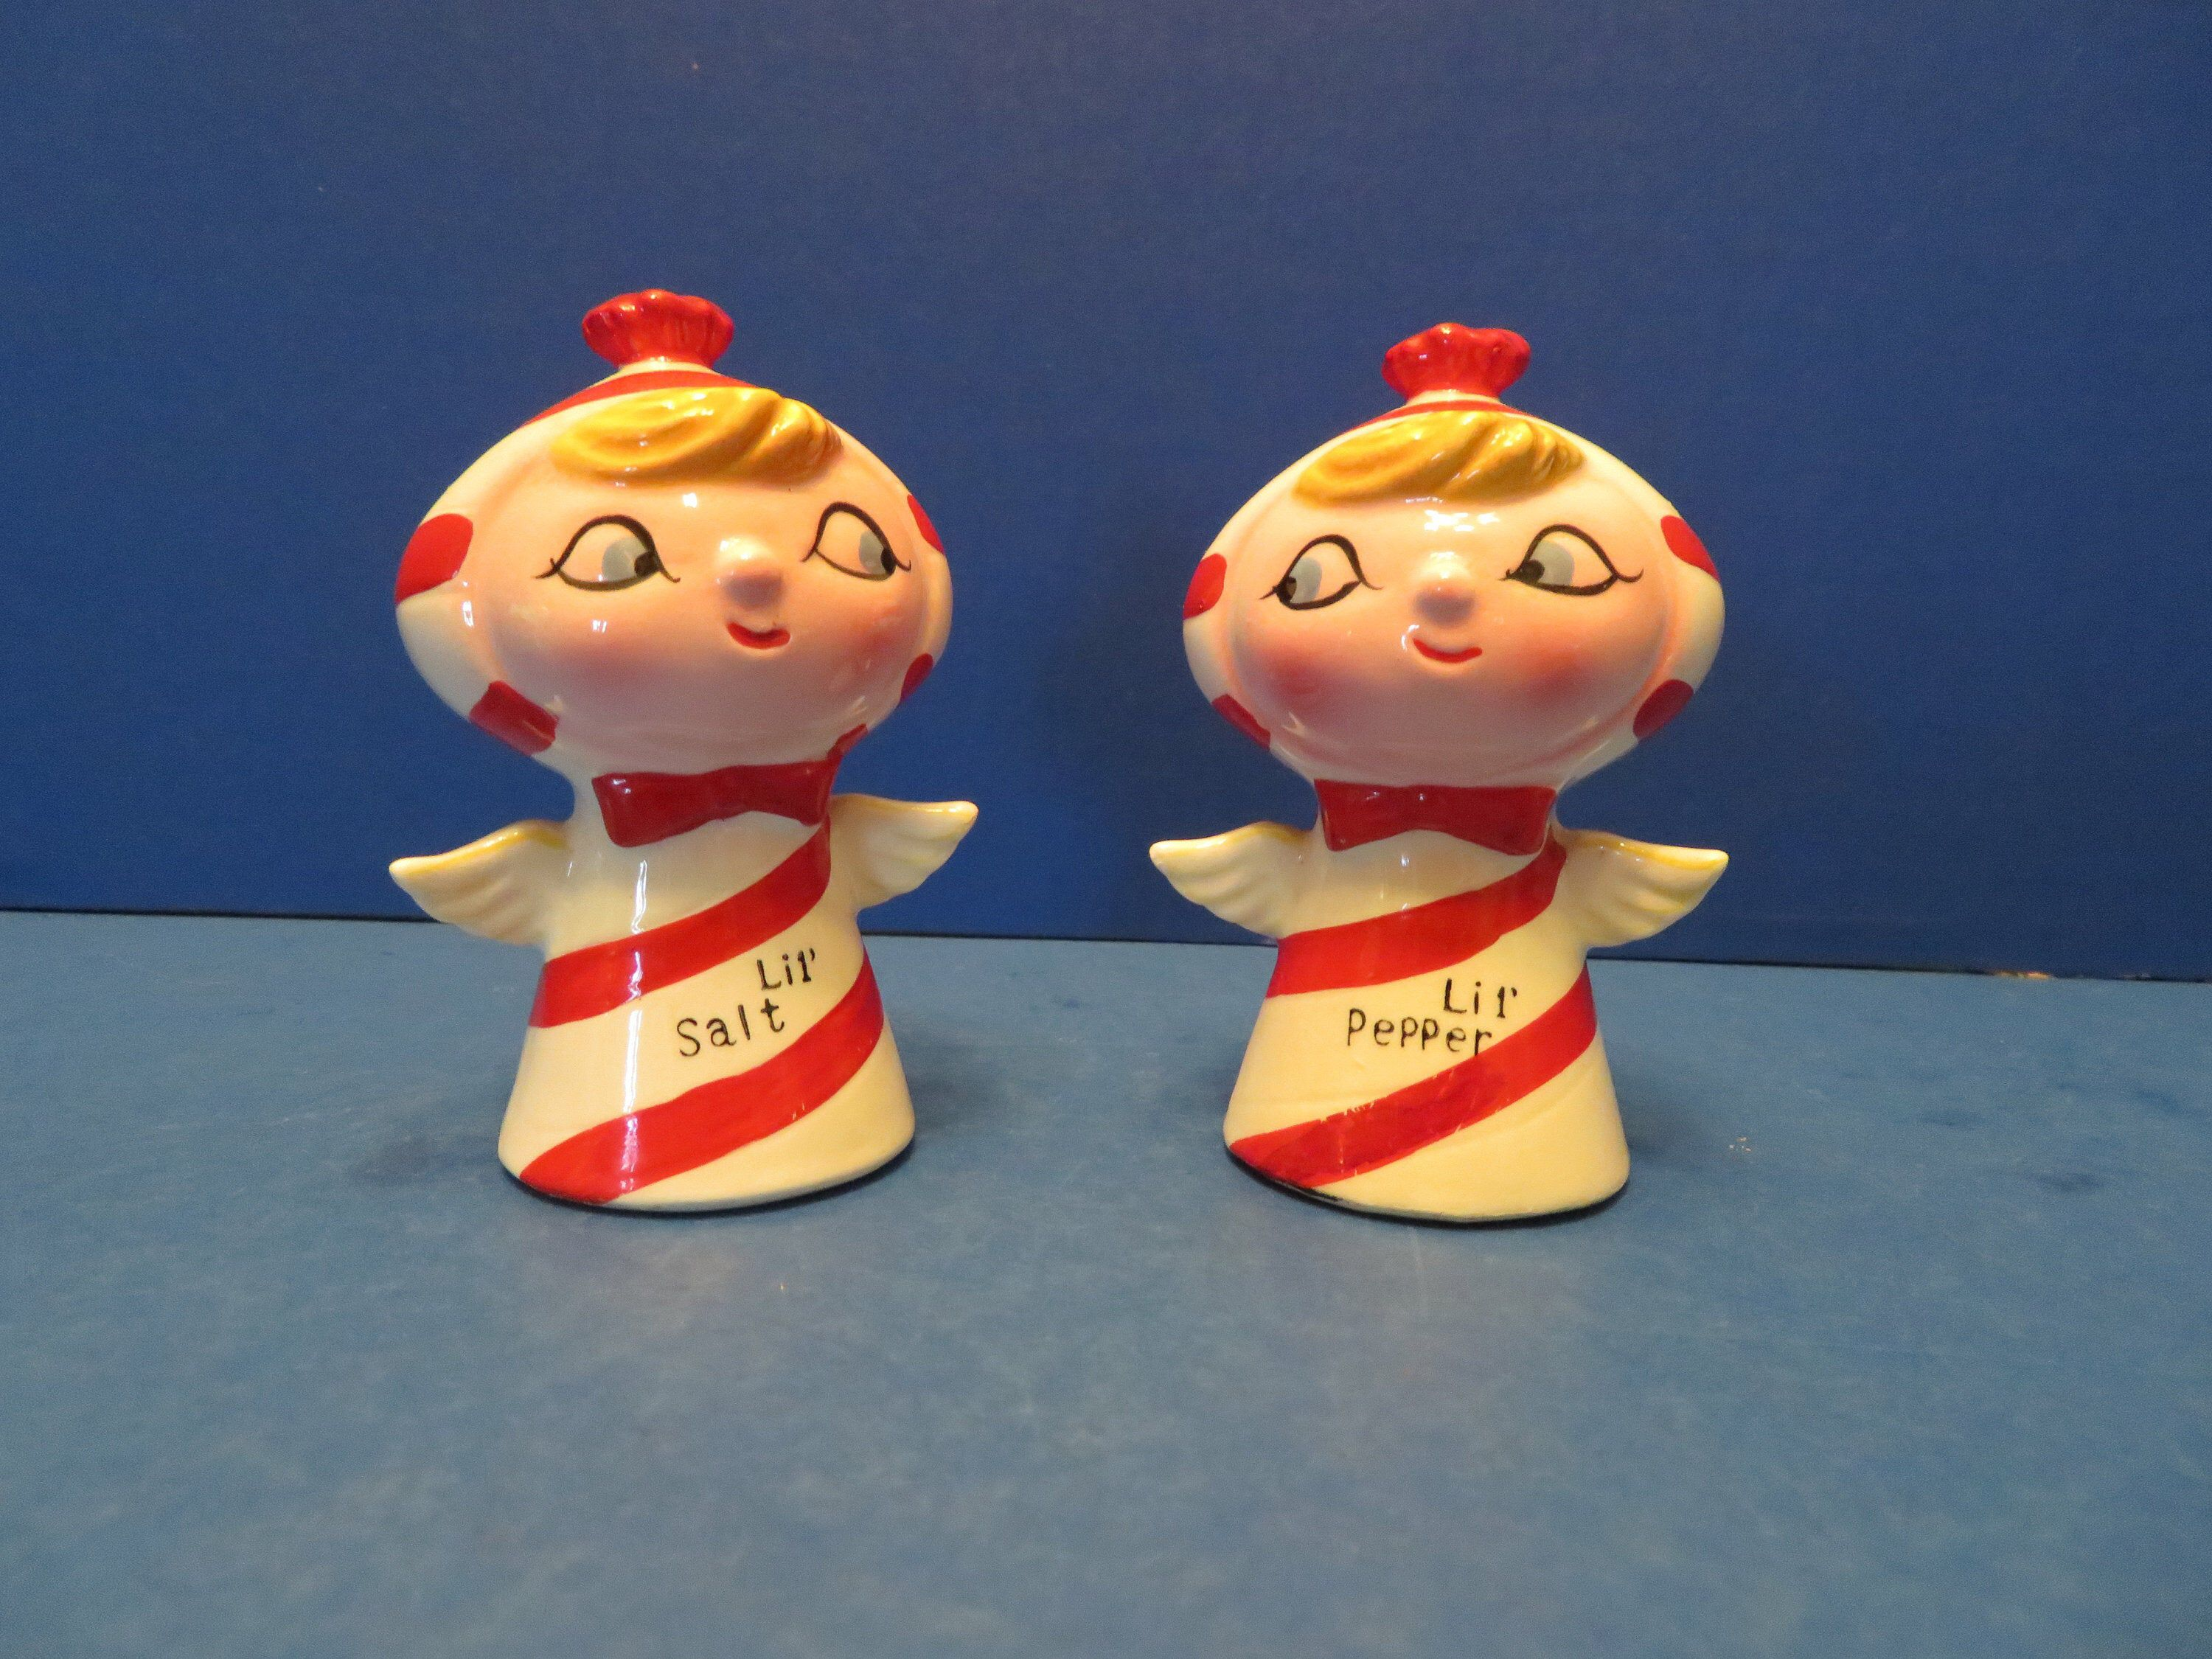 Holt Howard Candy Cane Striped Pixie Lil Salt and Lil